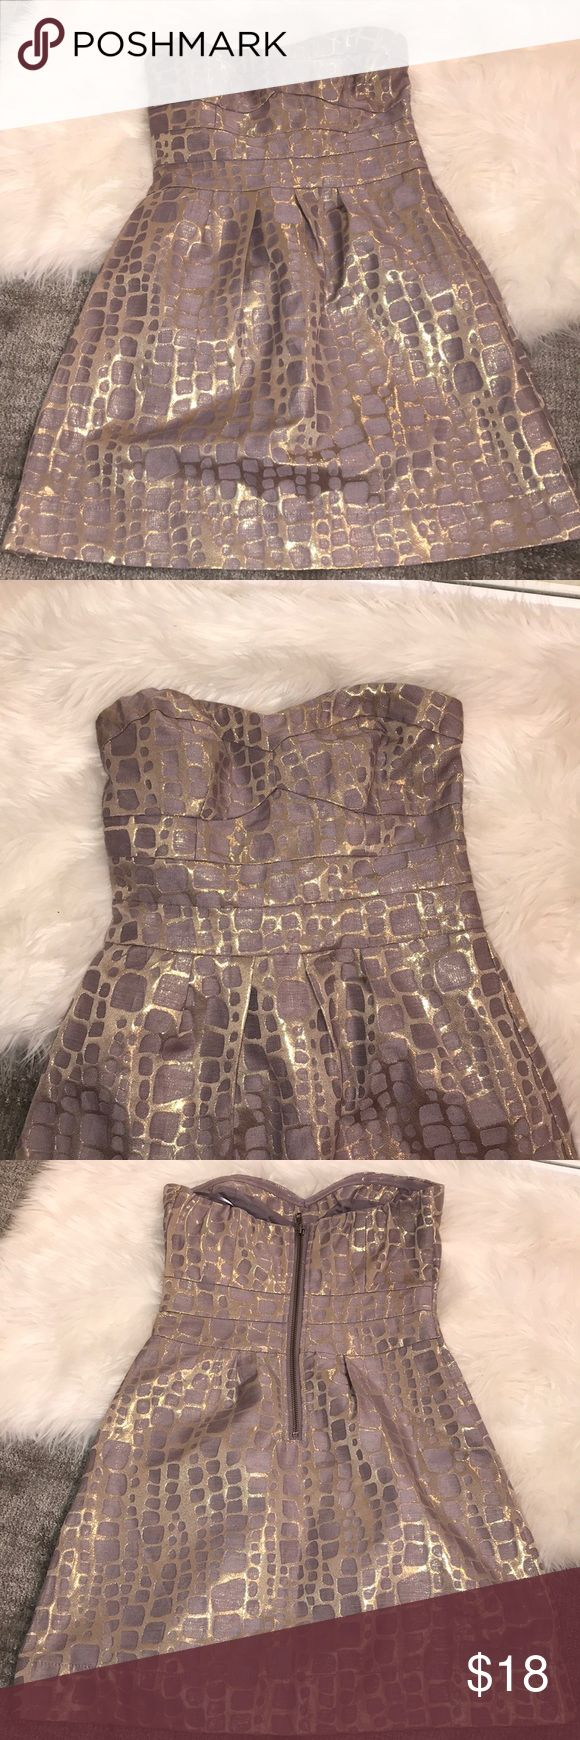 NWOT VIOLET & GOLD STRAPLESS DRESS American eagle Never worn, new without tags strapless dress! Pale purple/lavender with metallic gold pattern!!! Size 0 Gorgeous dress just never had an occasion to wear it:( American Eagle Outfitters Dresses Strapless